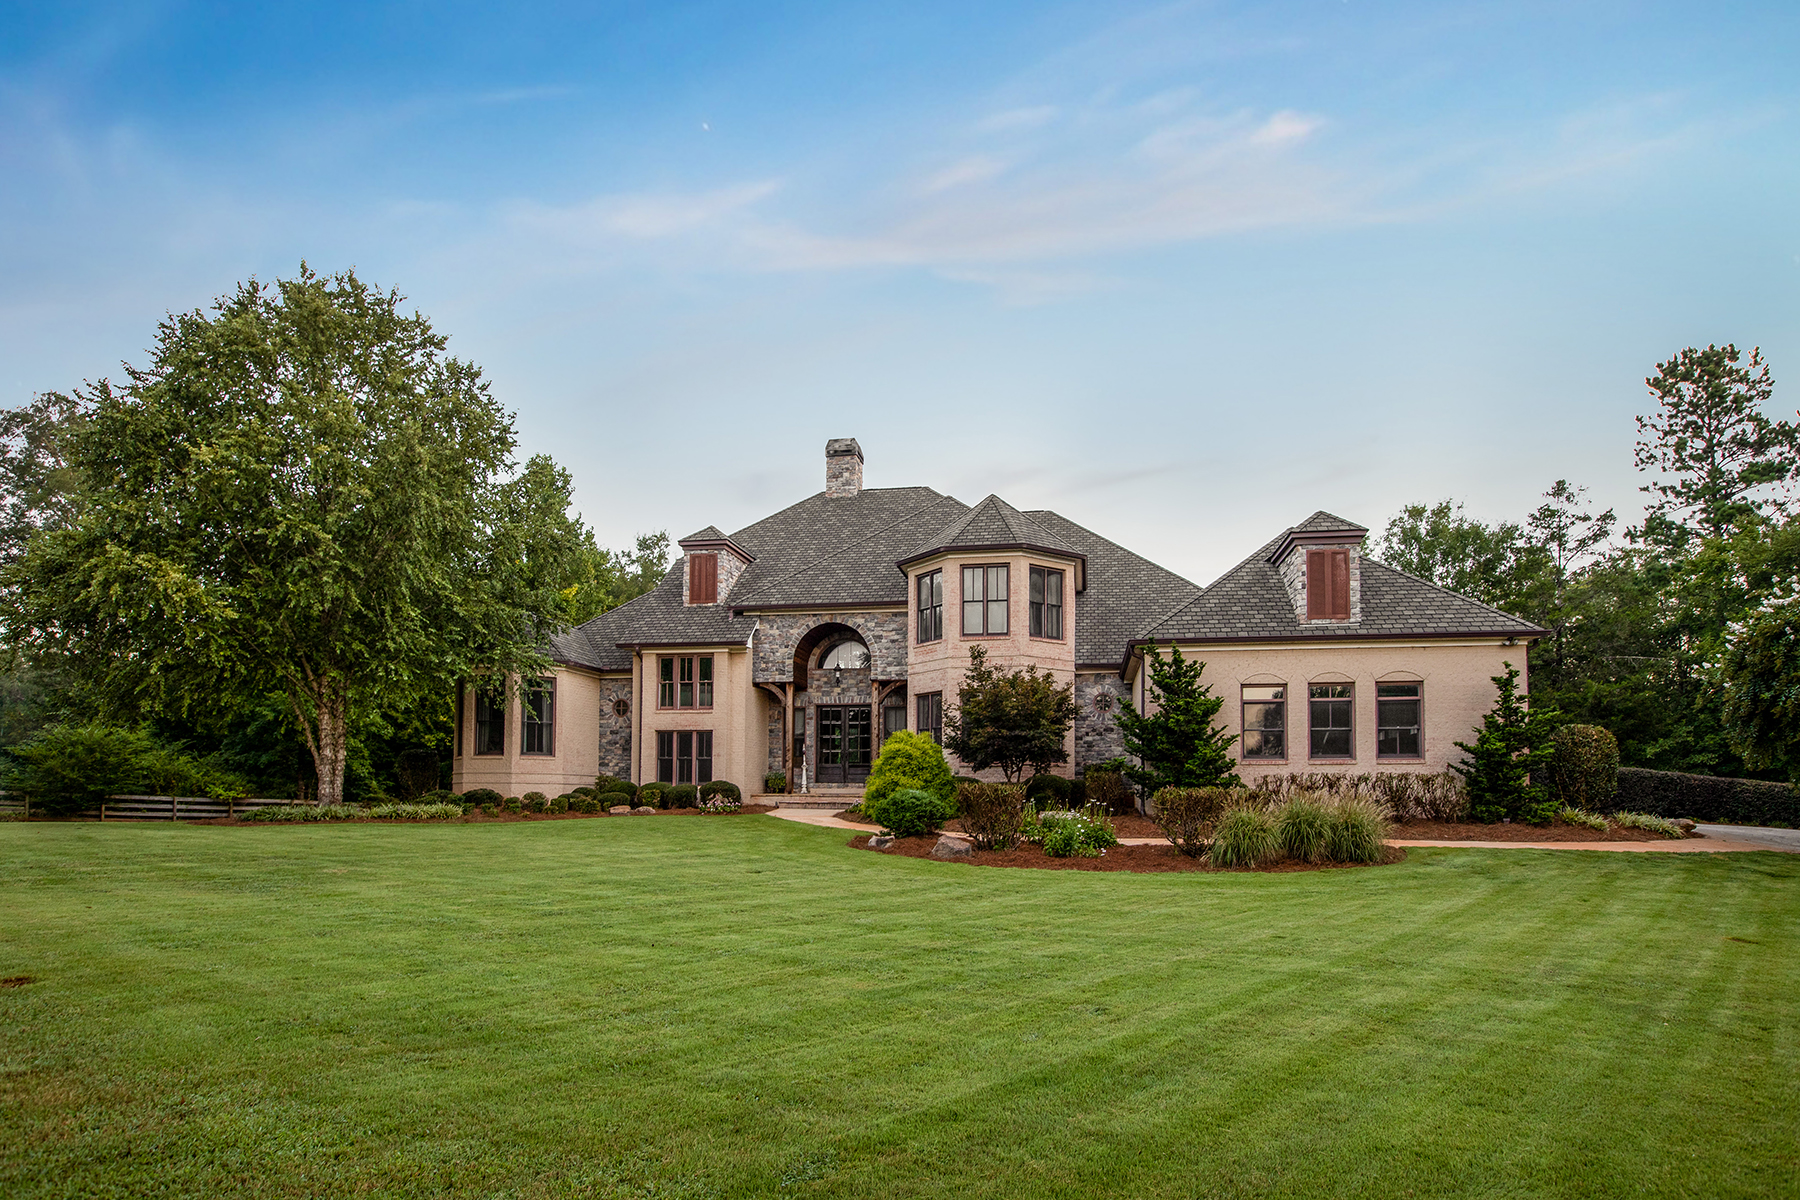 Частный односемейный дом для того Продажа на European-Style Brick and Stone Manor Situated Amid 71 Acres in Jackson Georgia 179 McIntosh Circle Jackson, Джорджия 30233 Соединенные Штаты